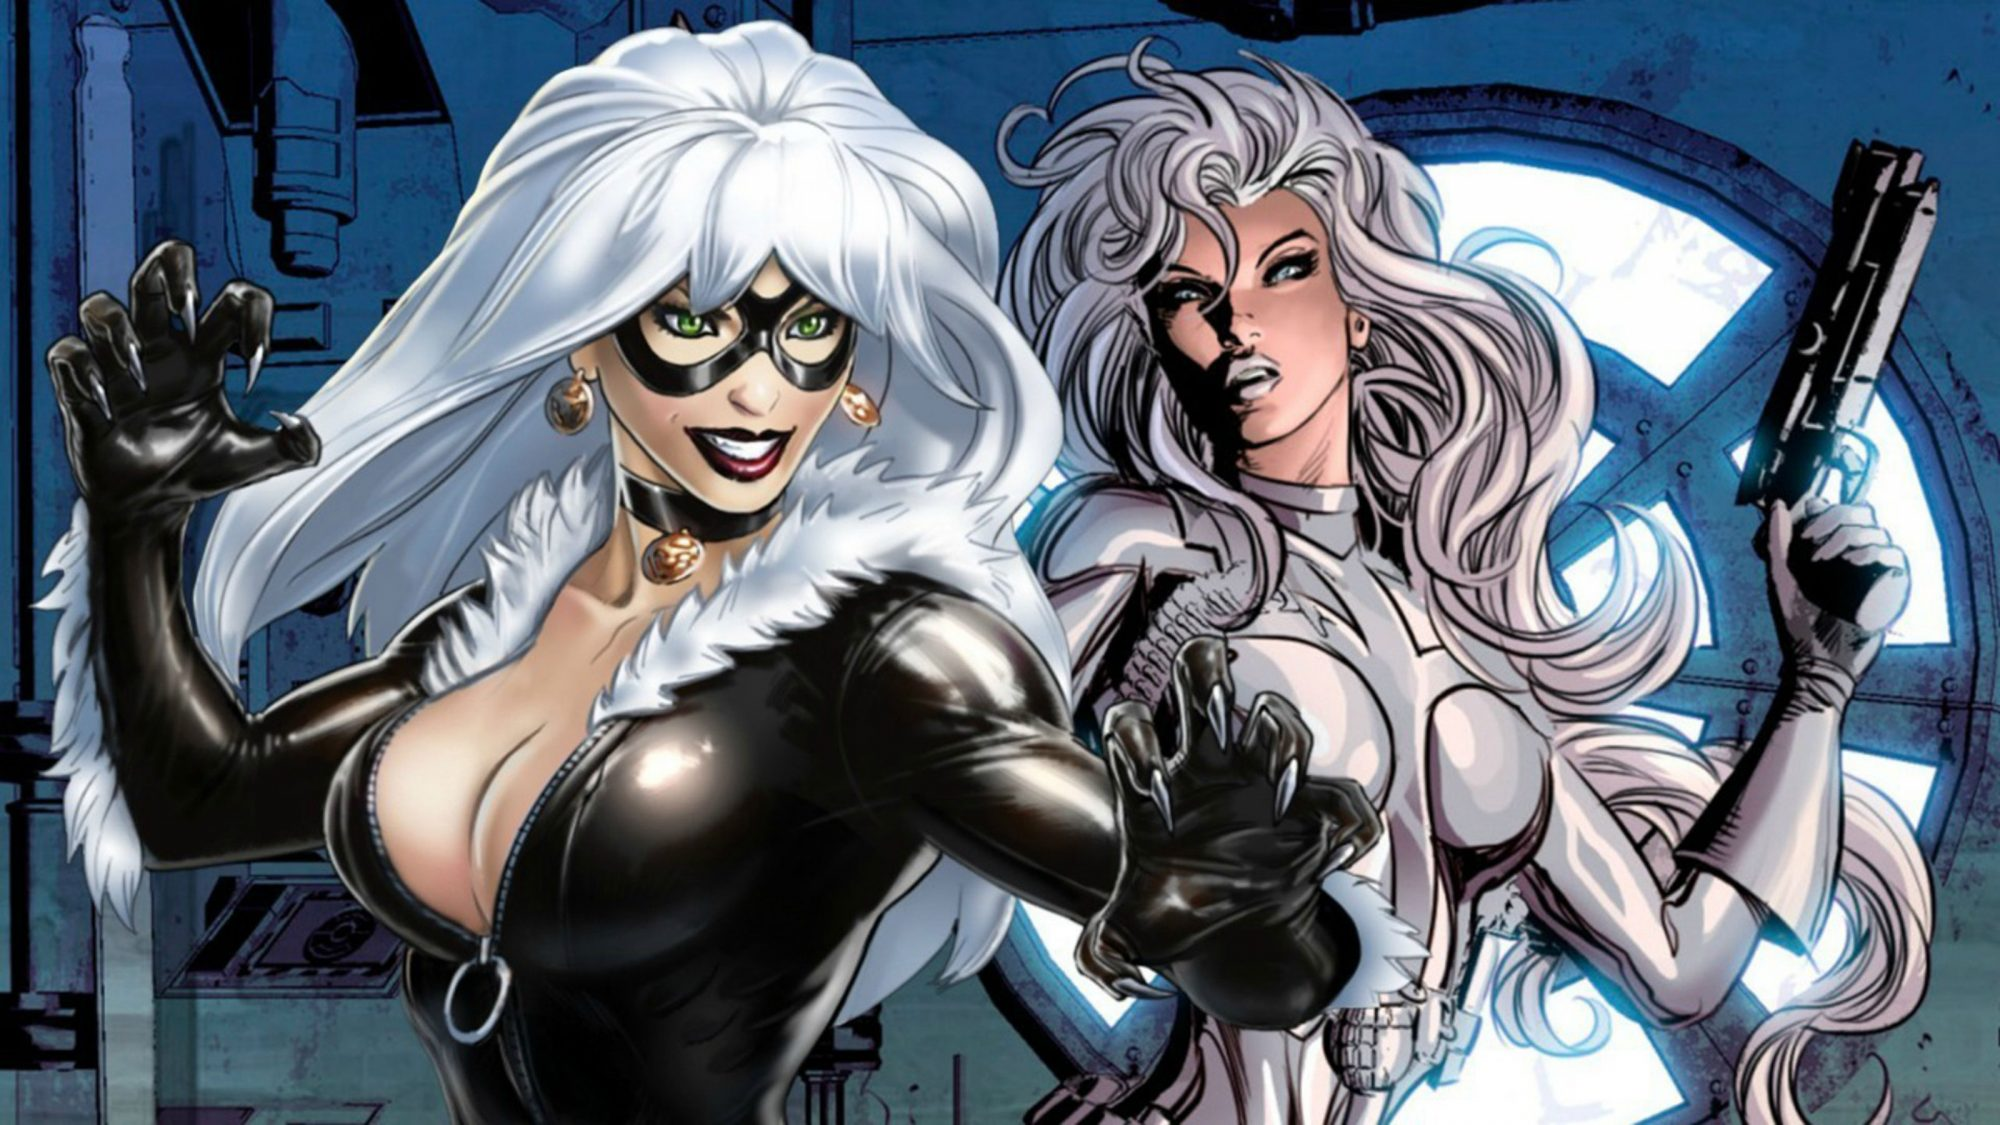 Black Cat and Silver Sable CR: Marvel